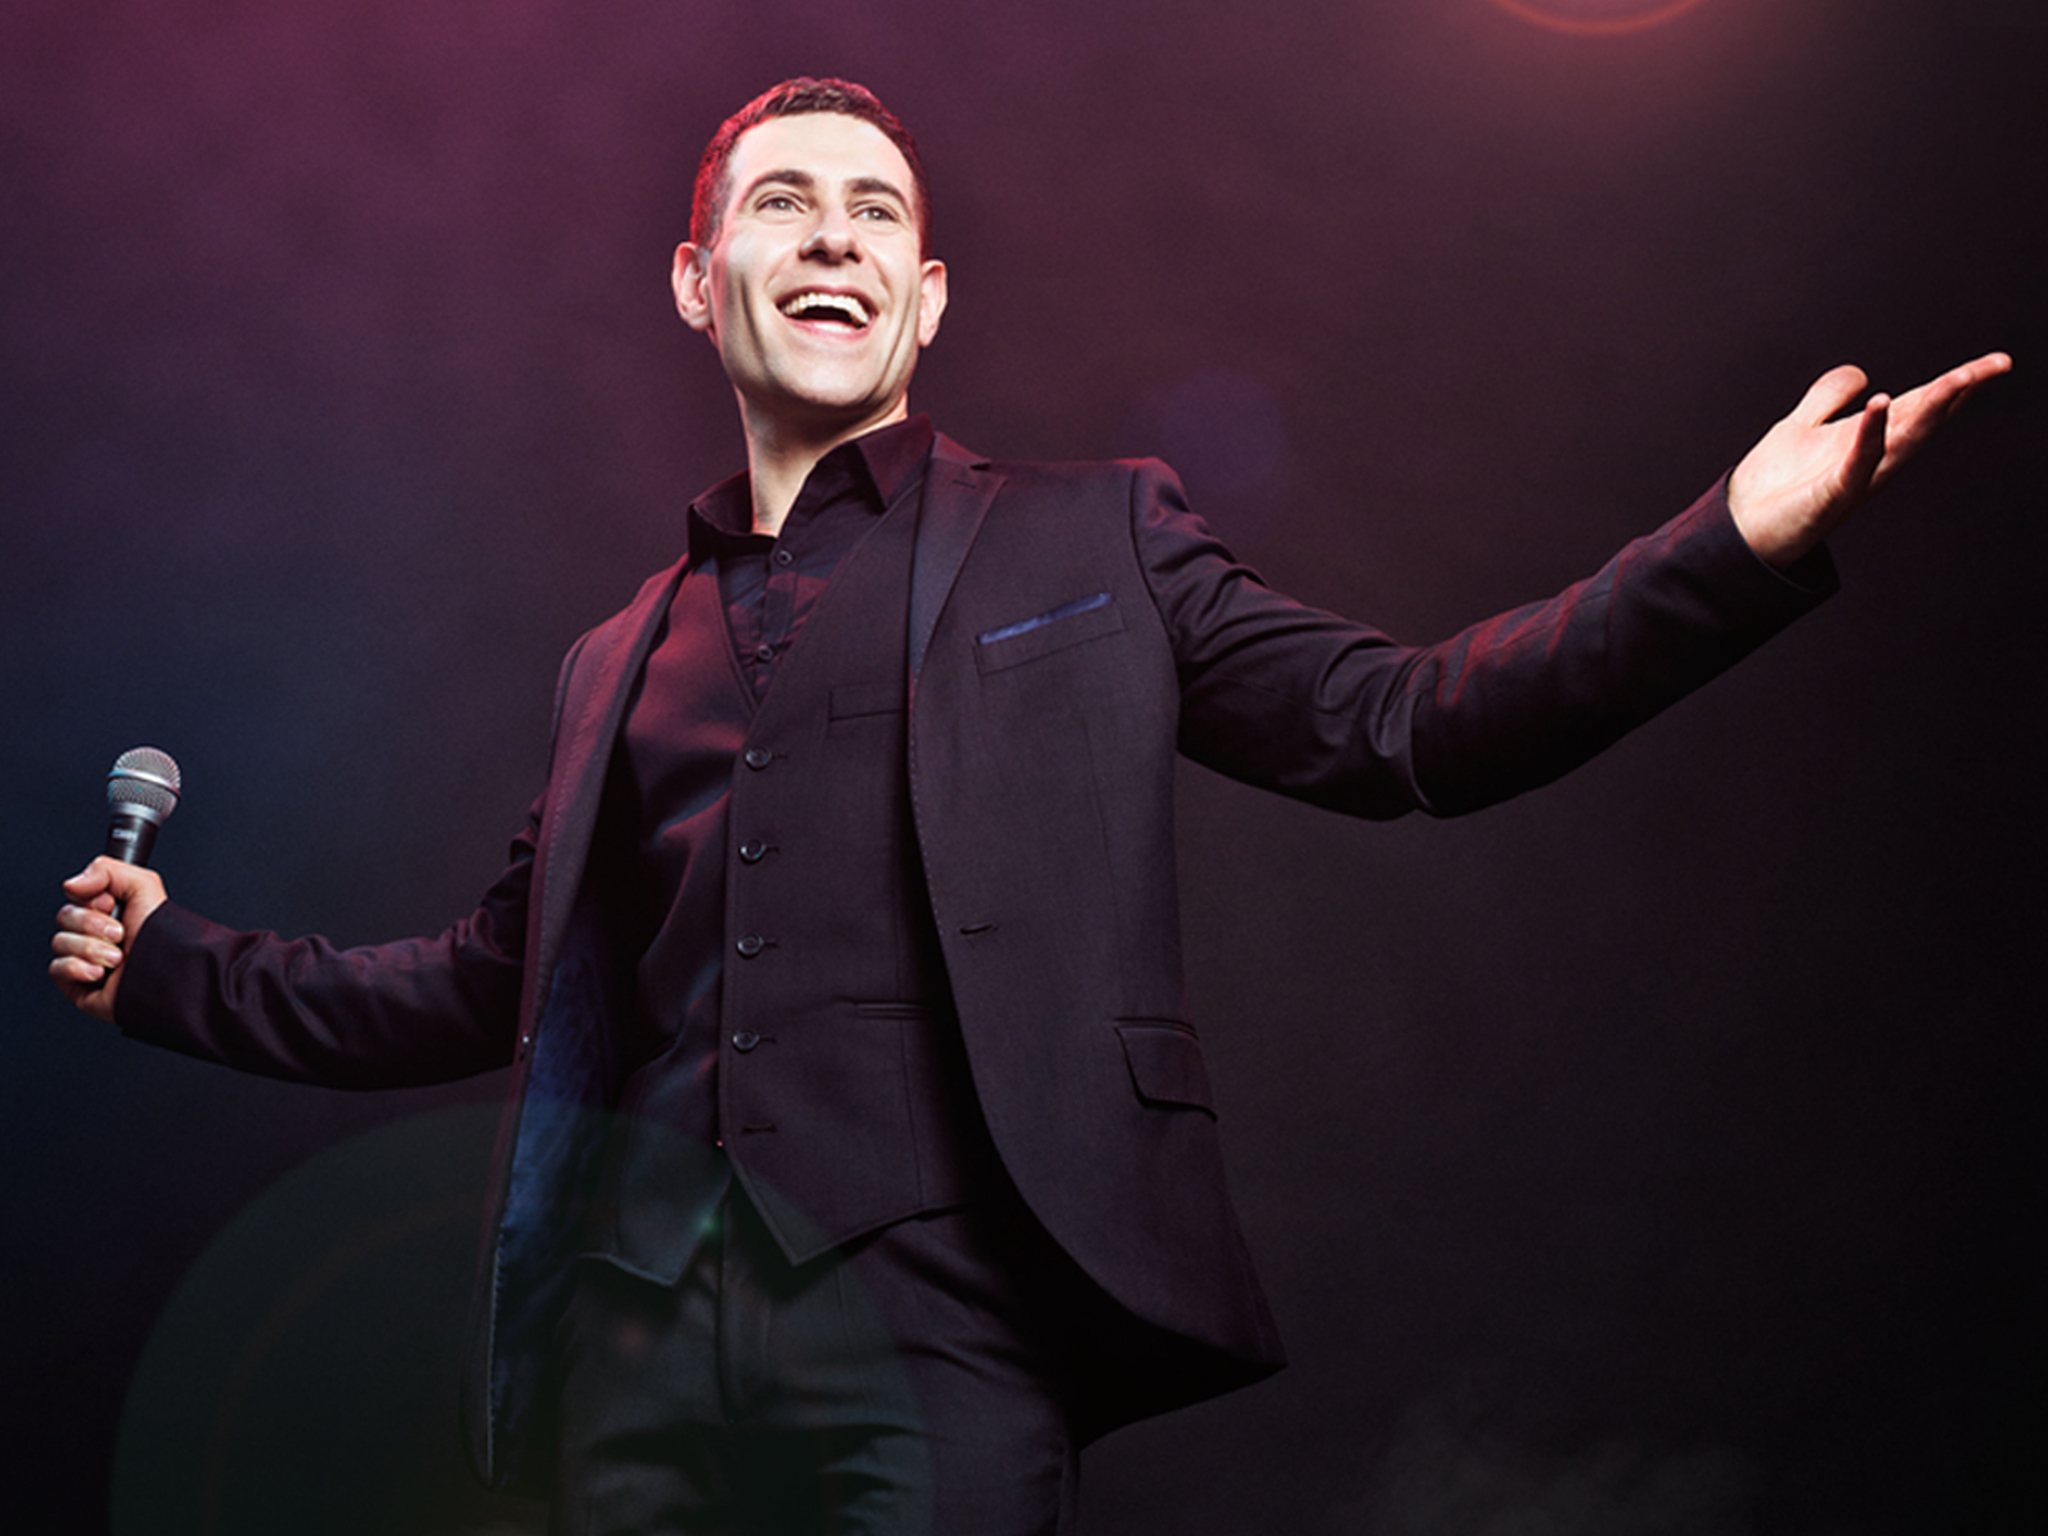 Lee Nelson – Suited and Booted